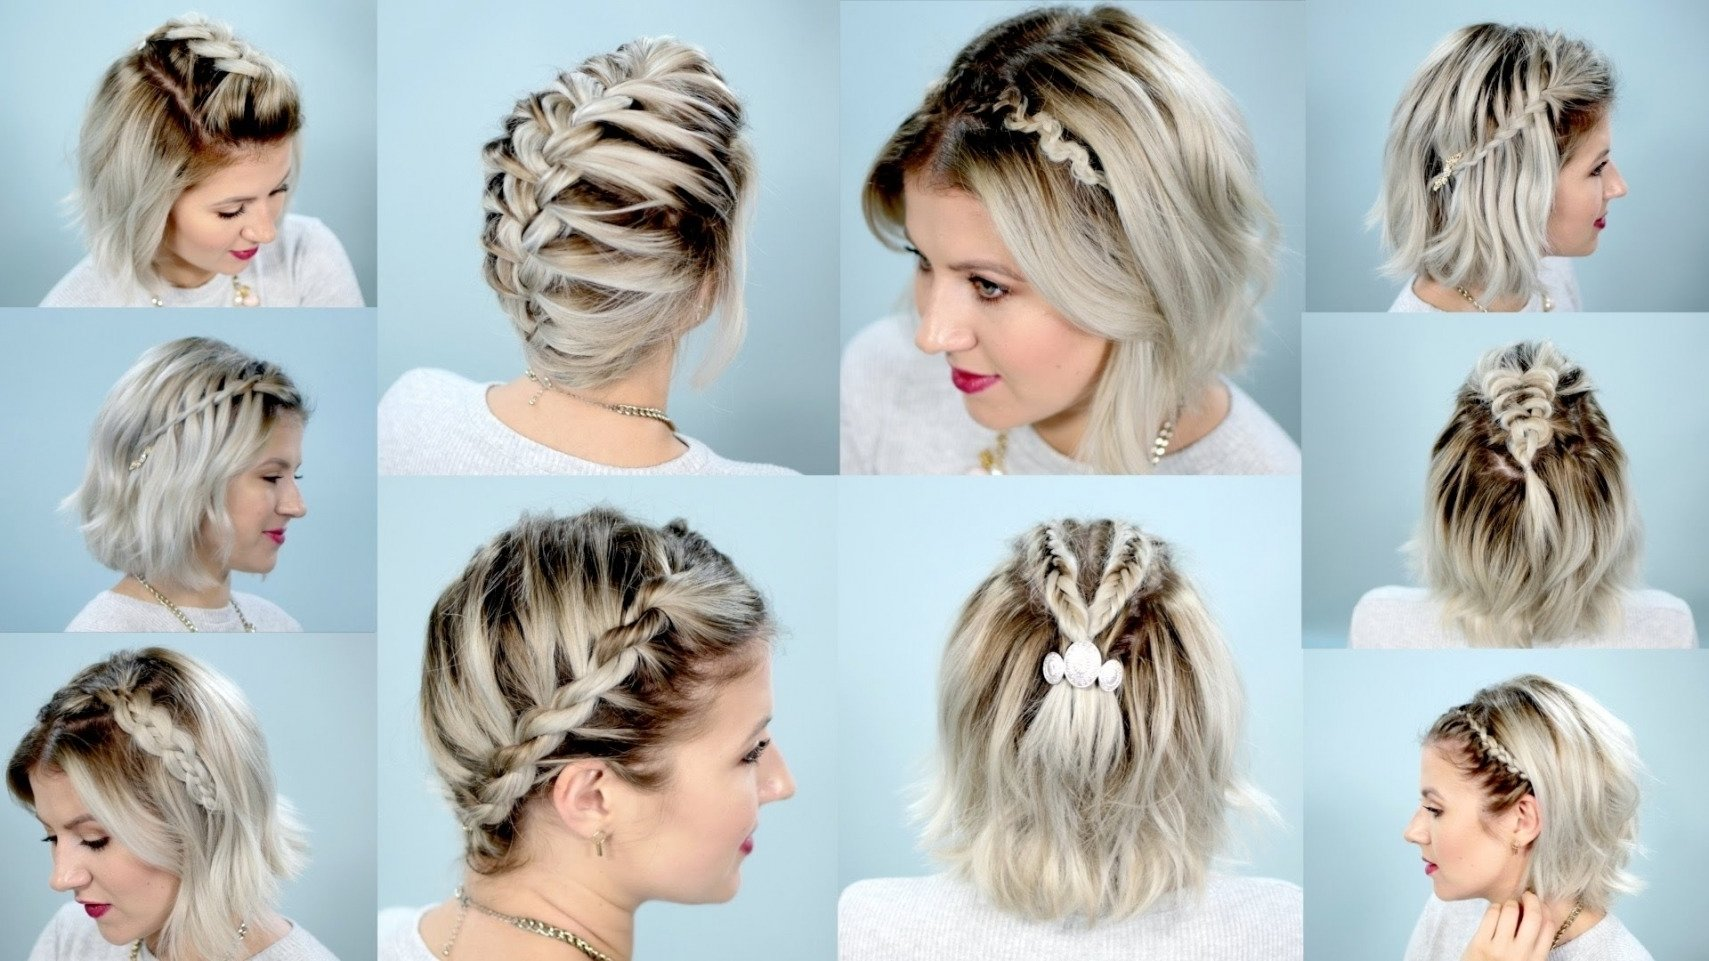 10 easy braid hairstyles for short hair | best hairstyles and